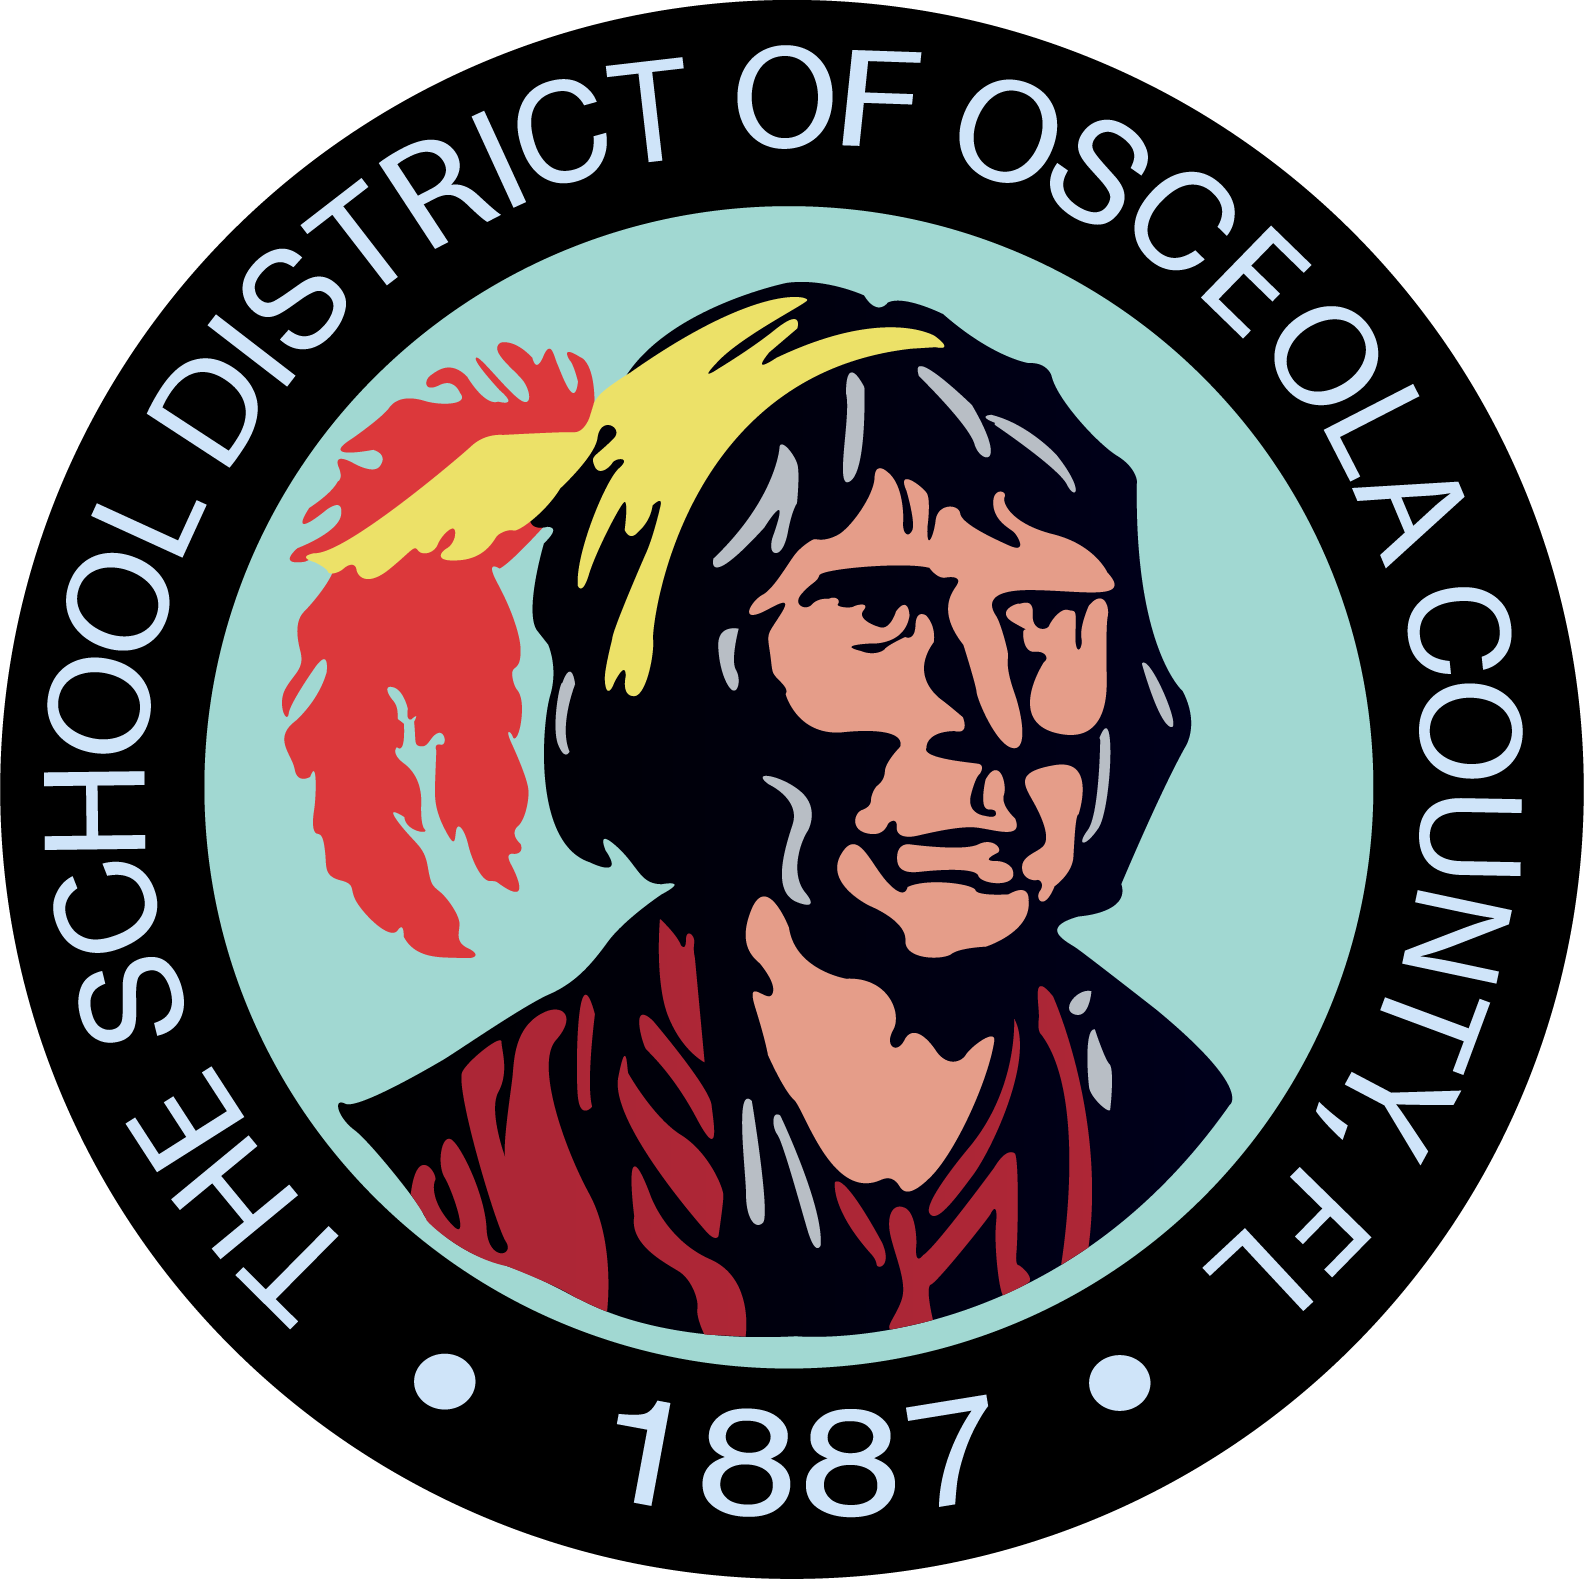 The School District of Osceola County, Florida / District Calendar